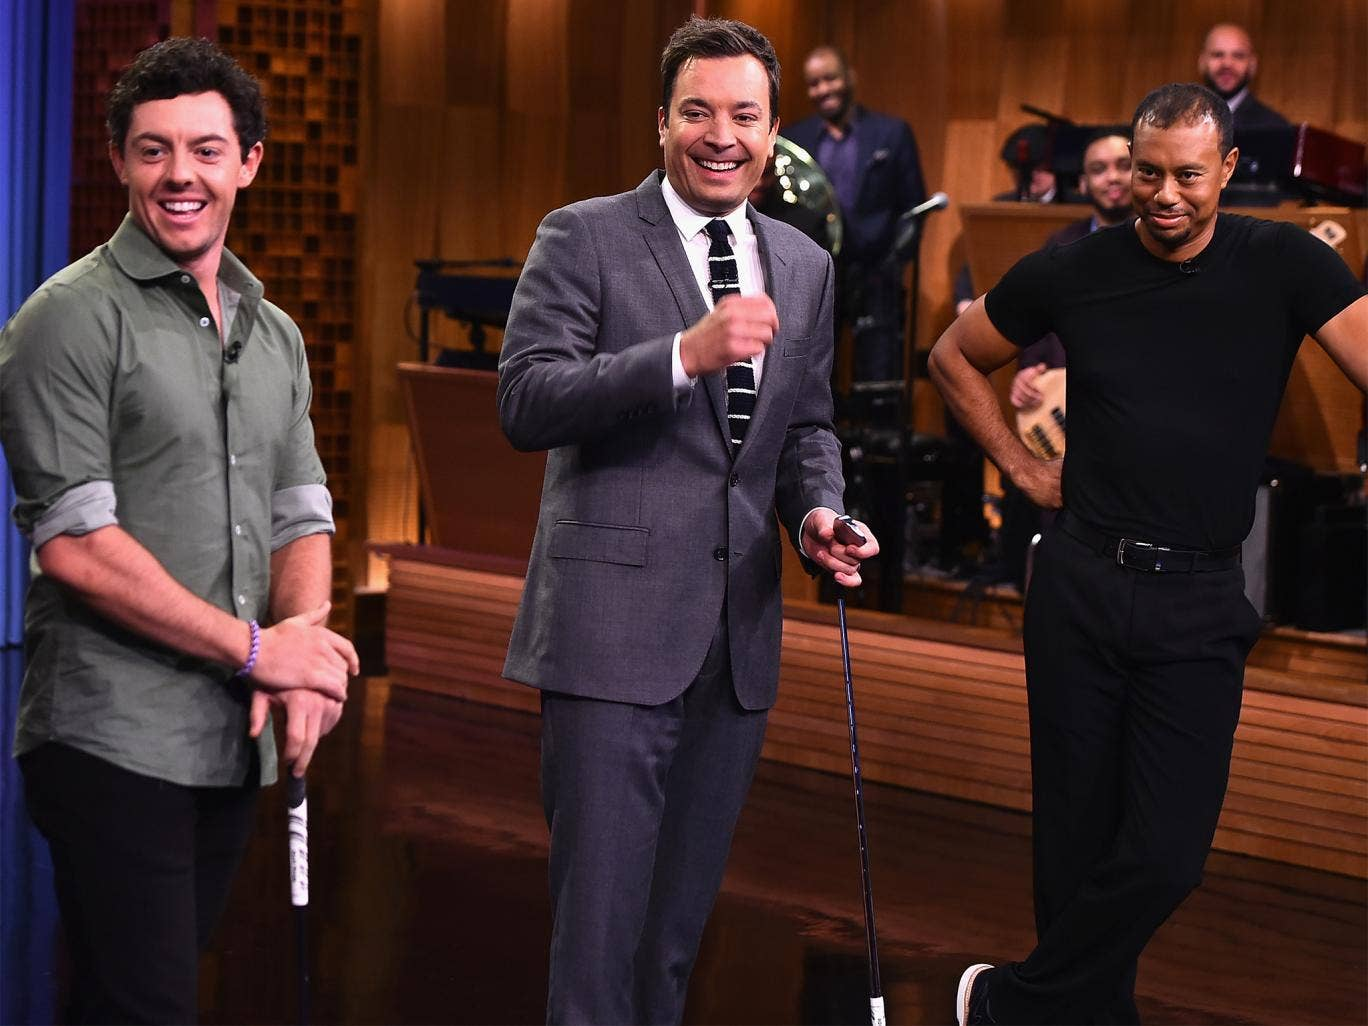 Rory McIlroy alongside Jimmy Fallon and Tiger Woods